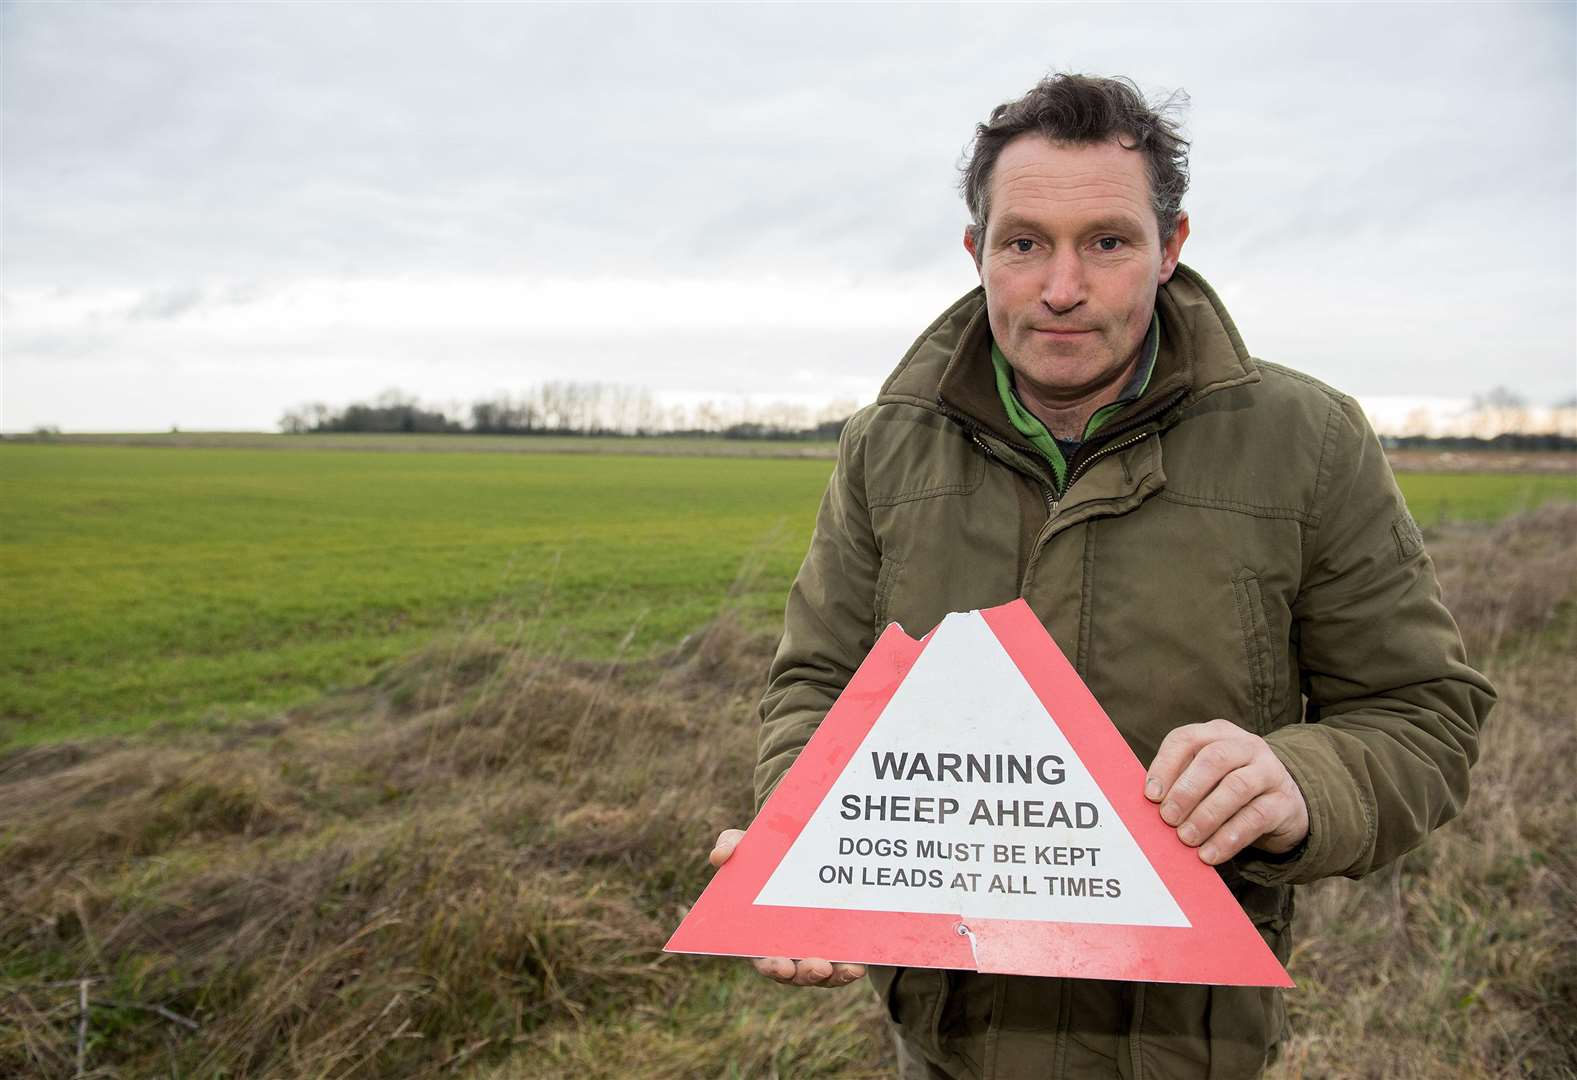 Suffolk Police joins Acton farmer's appeal after dog attacks on sheep